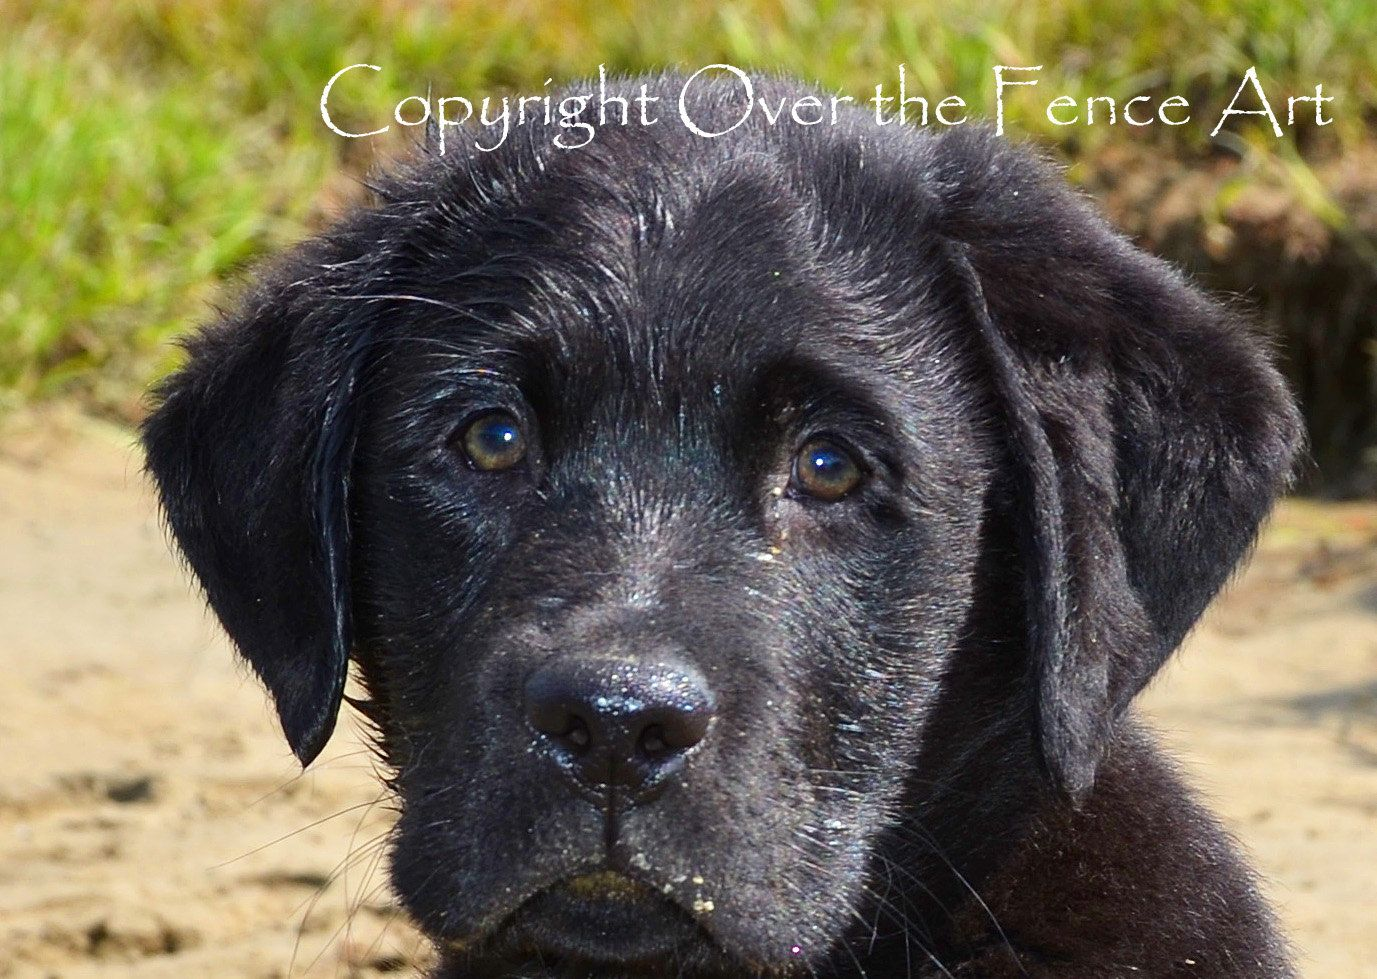 Black Labrador Puppy Fine Art Photo Greeting Card Black Lab Card Print By Overthefenceart On Etsy Black Labrador Puppy Fine Art Photo Labrador